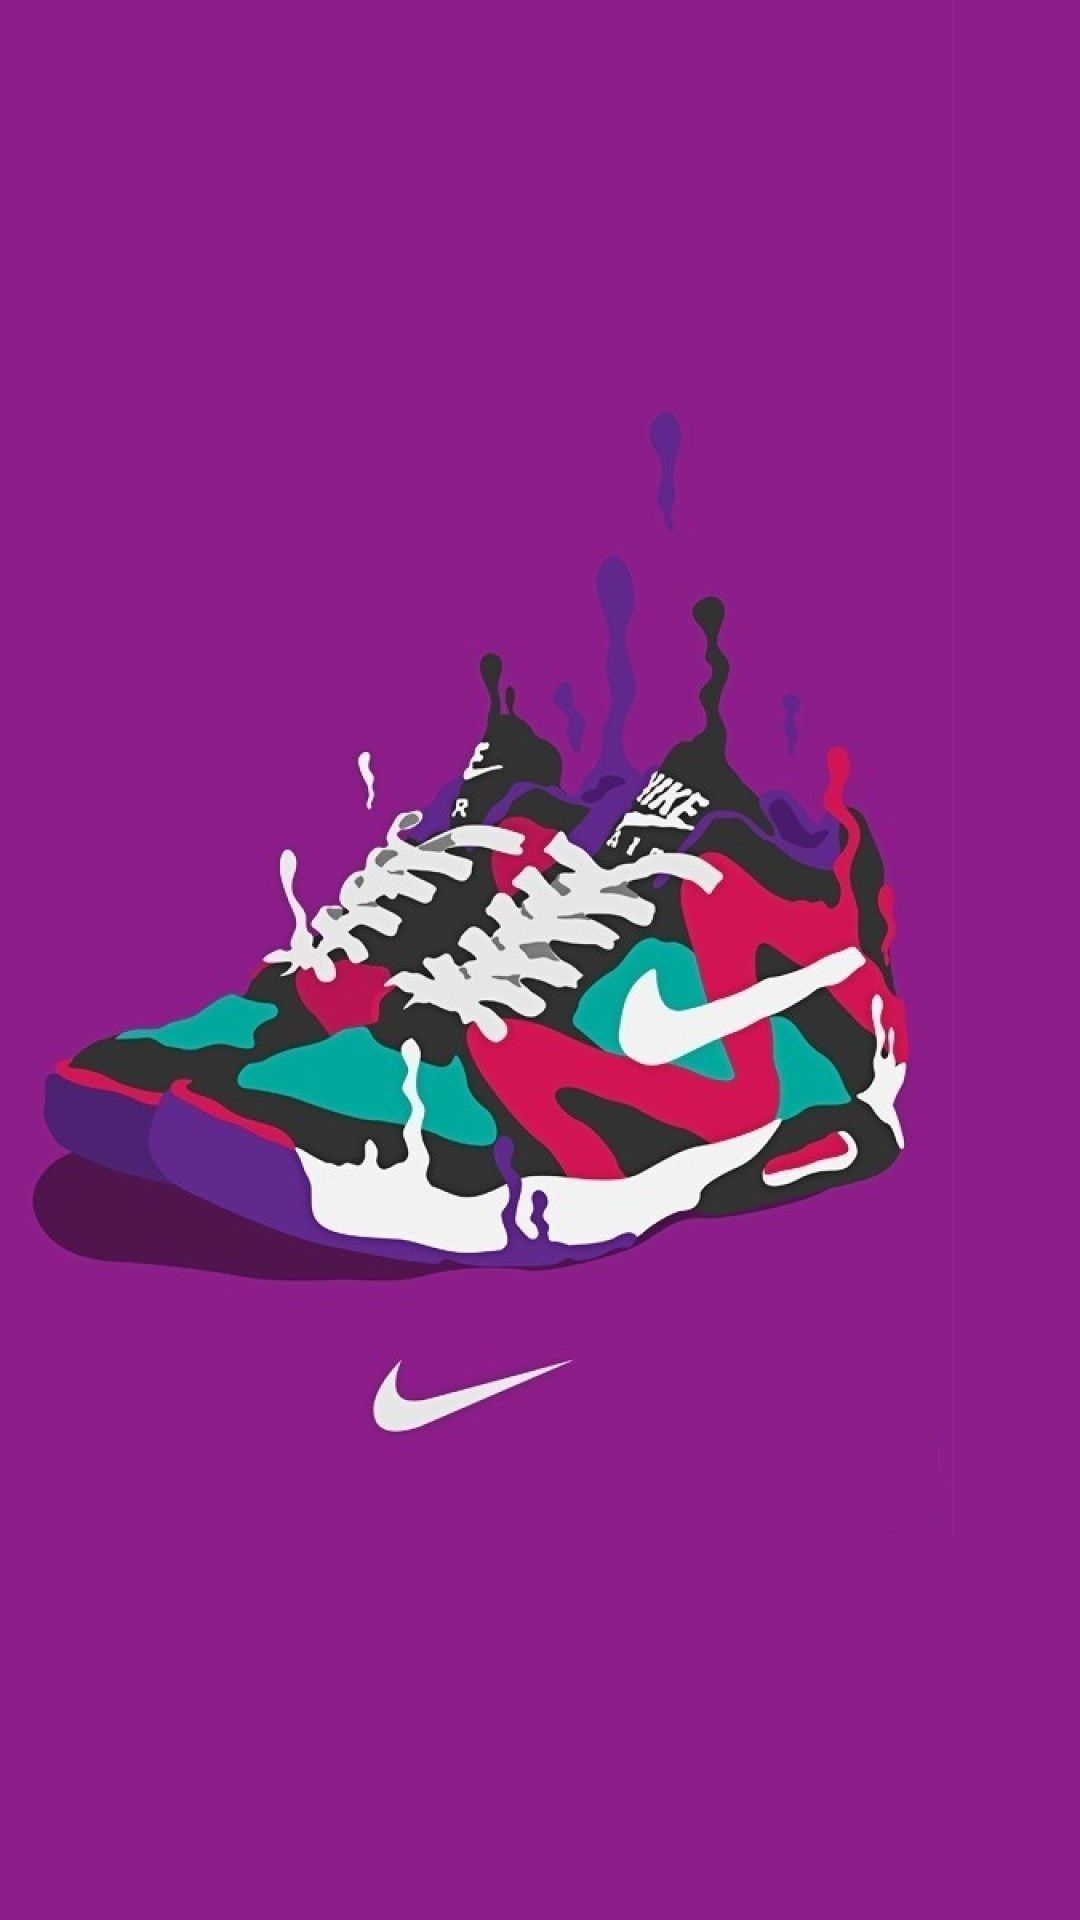 Look - Logo Nike wallpaper purple video